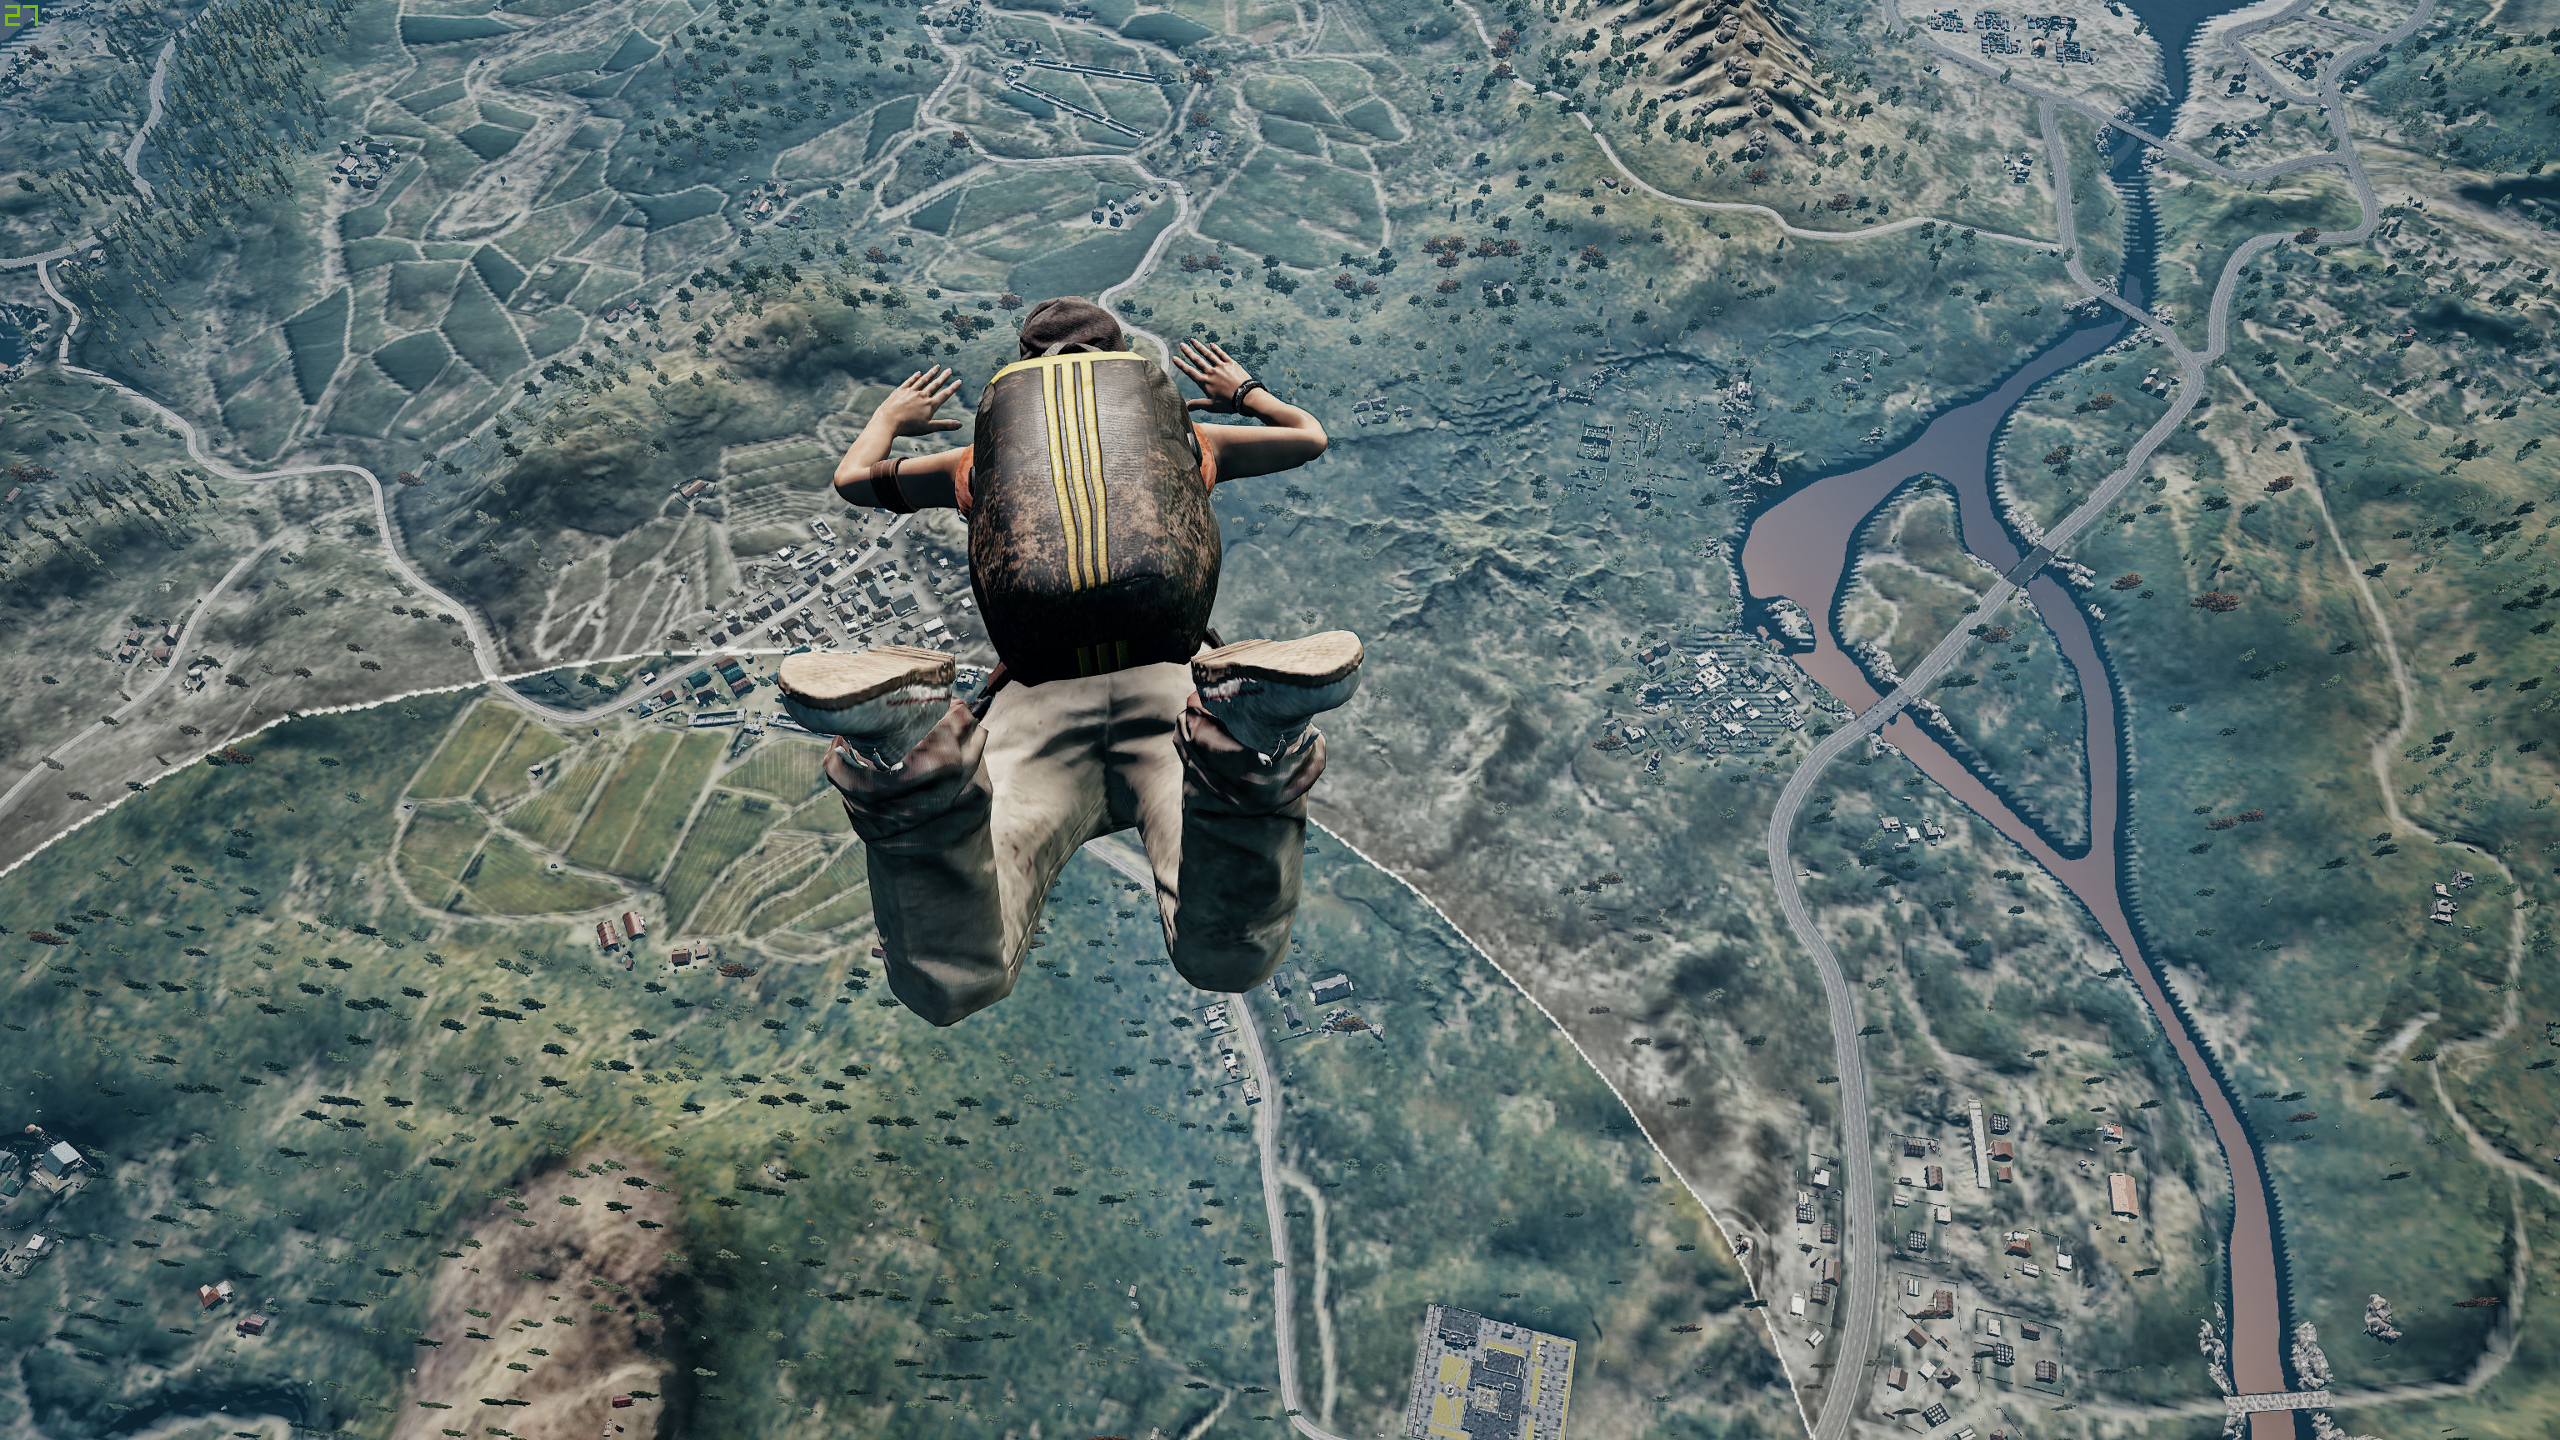 Pubg Song Hd Video Download: Pubg Jump From Plane 4k, HD Games, 4k Wallpapers, Images